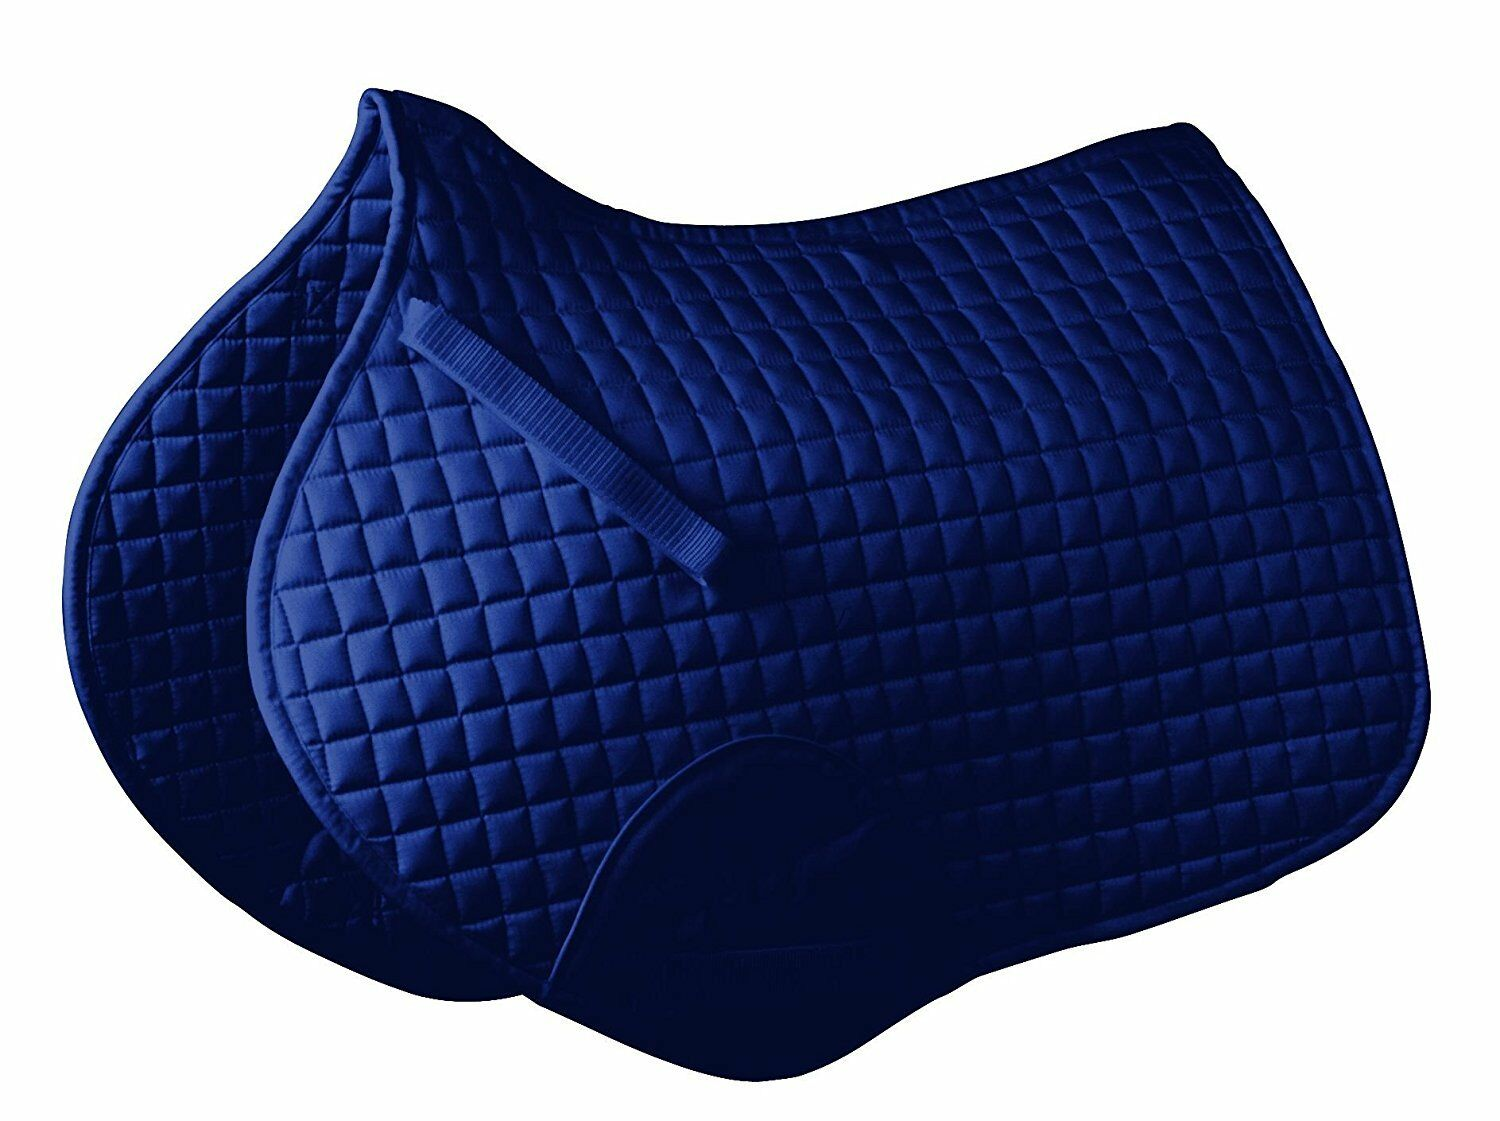 Roma Mini Quilt  Shaped Saddle Pad with High Withers and Extended Girth Panel  healthy